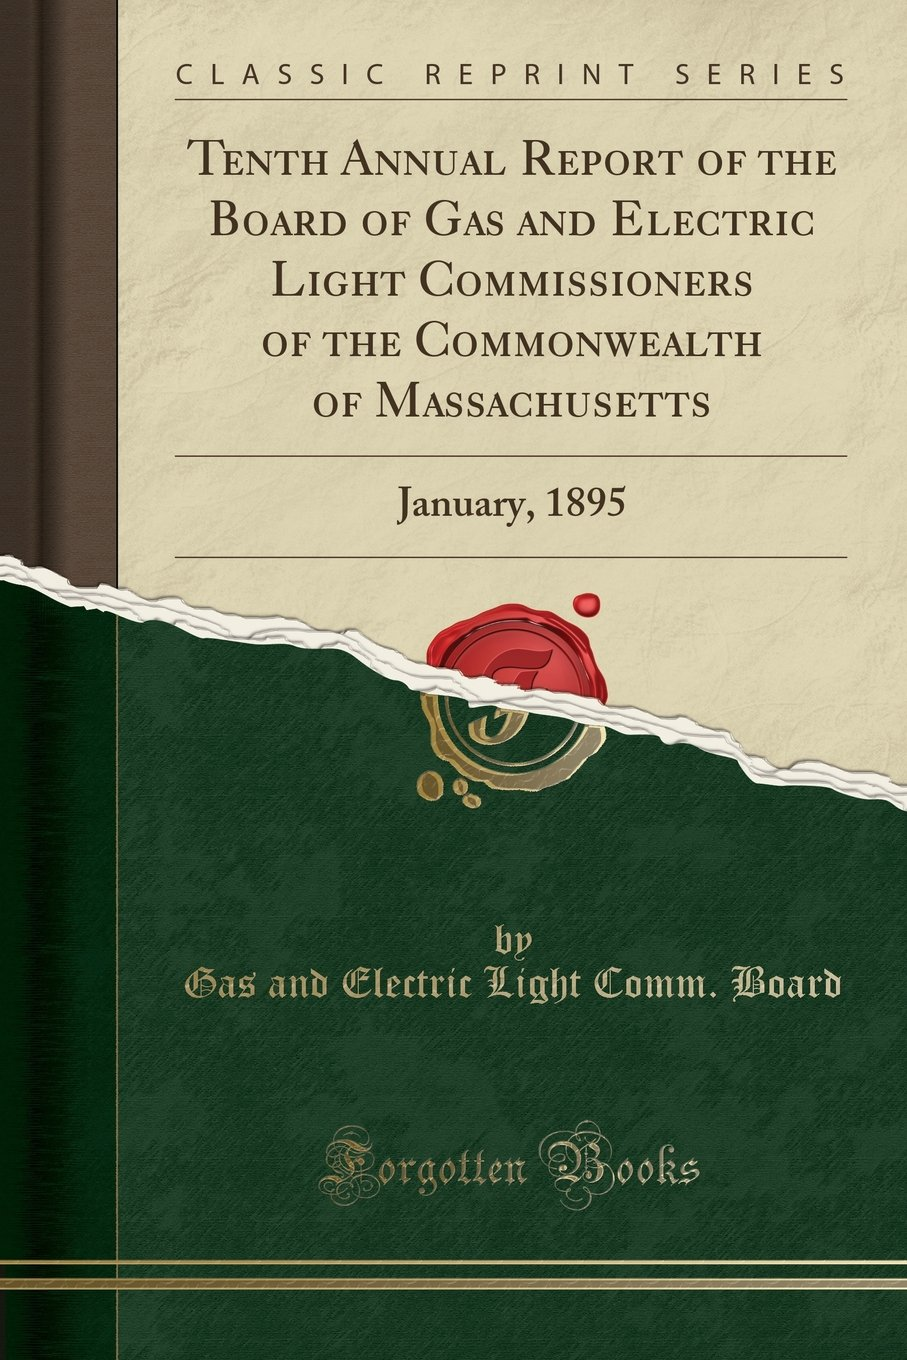 Download Tenth Annual Report of the Board of Gas and Electric Light Commissioners of the Commonwealth of Massachusetts: January, 1895 (Classic Reprint) PDF